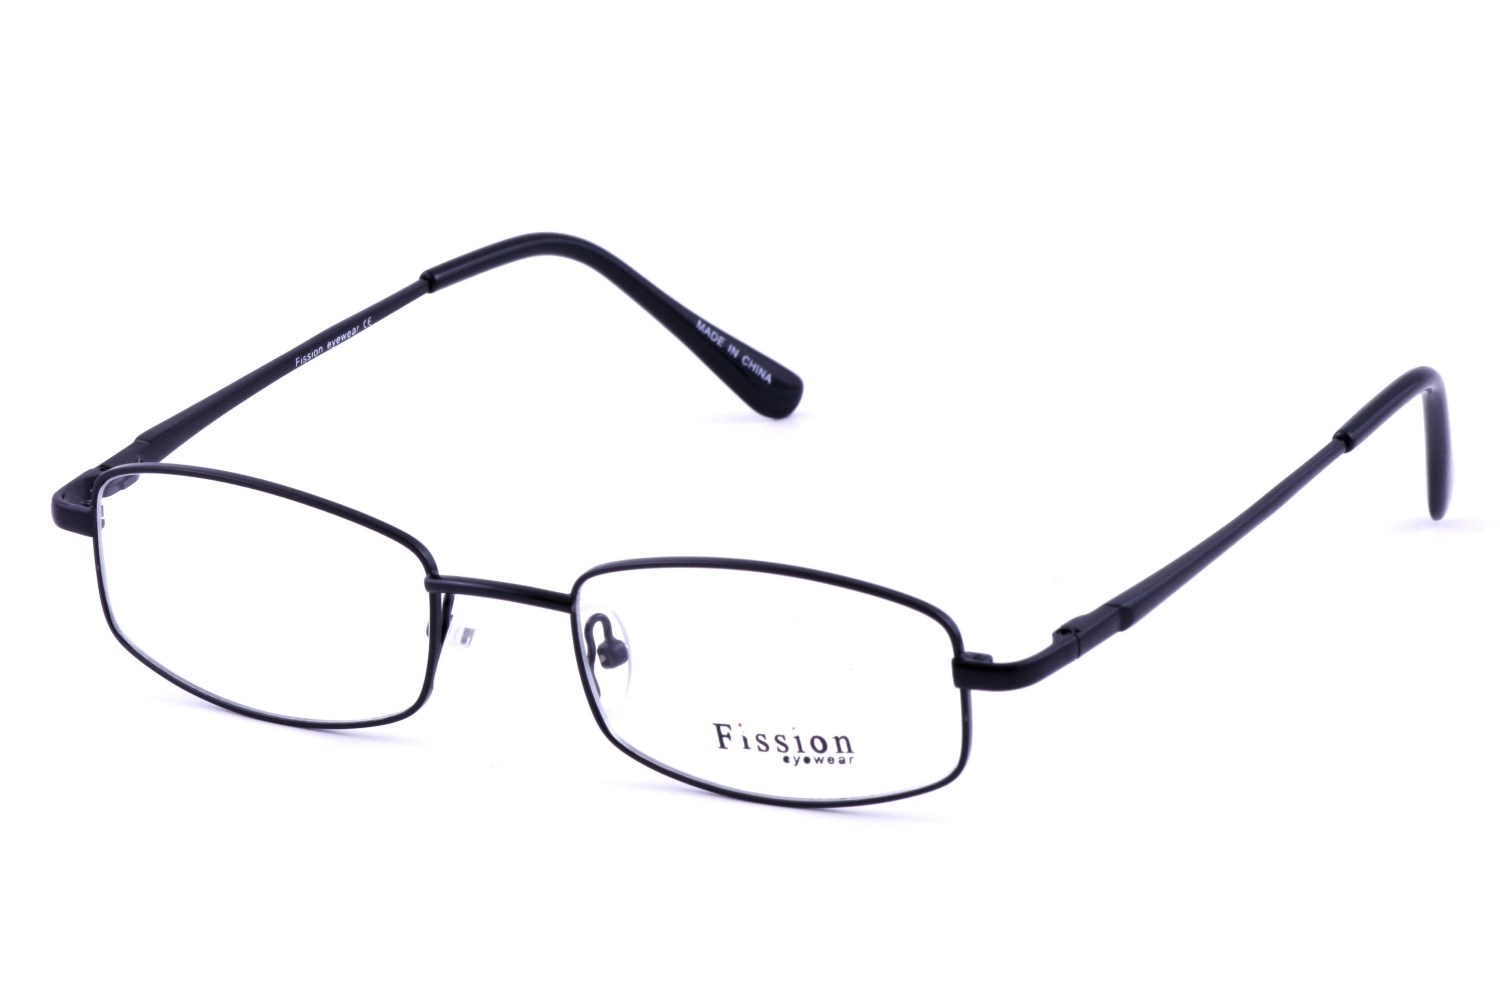 Fission 016 Prescription Eyeglasses Frames